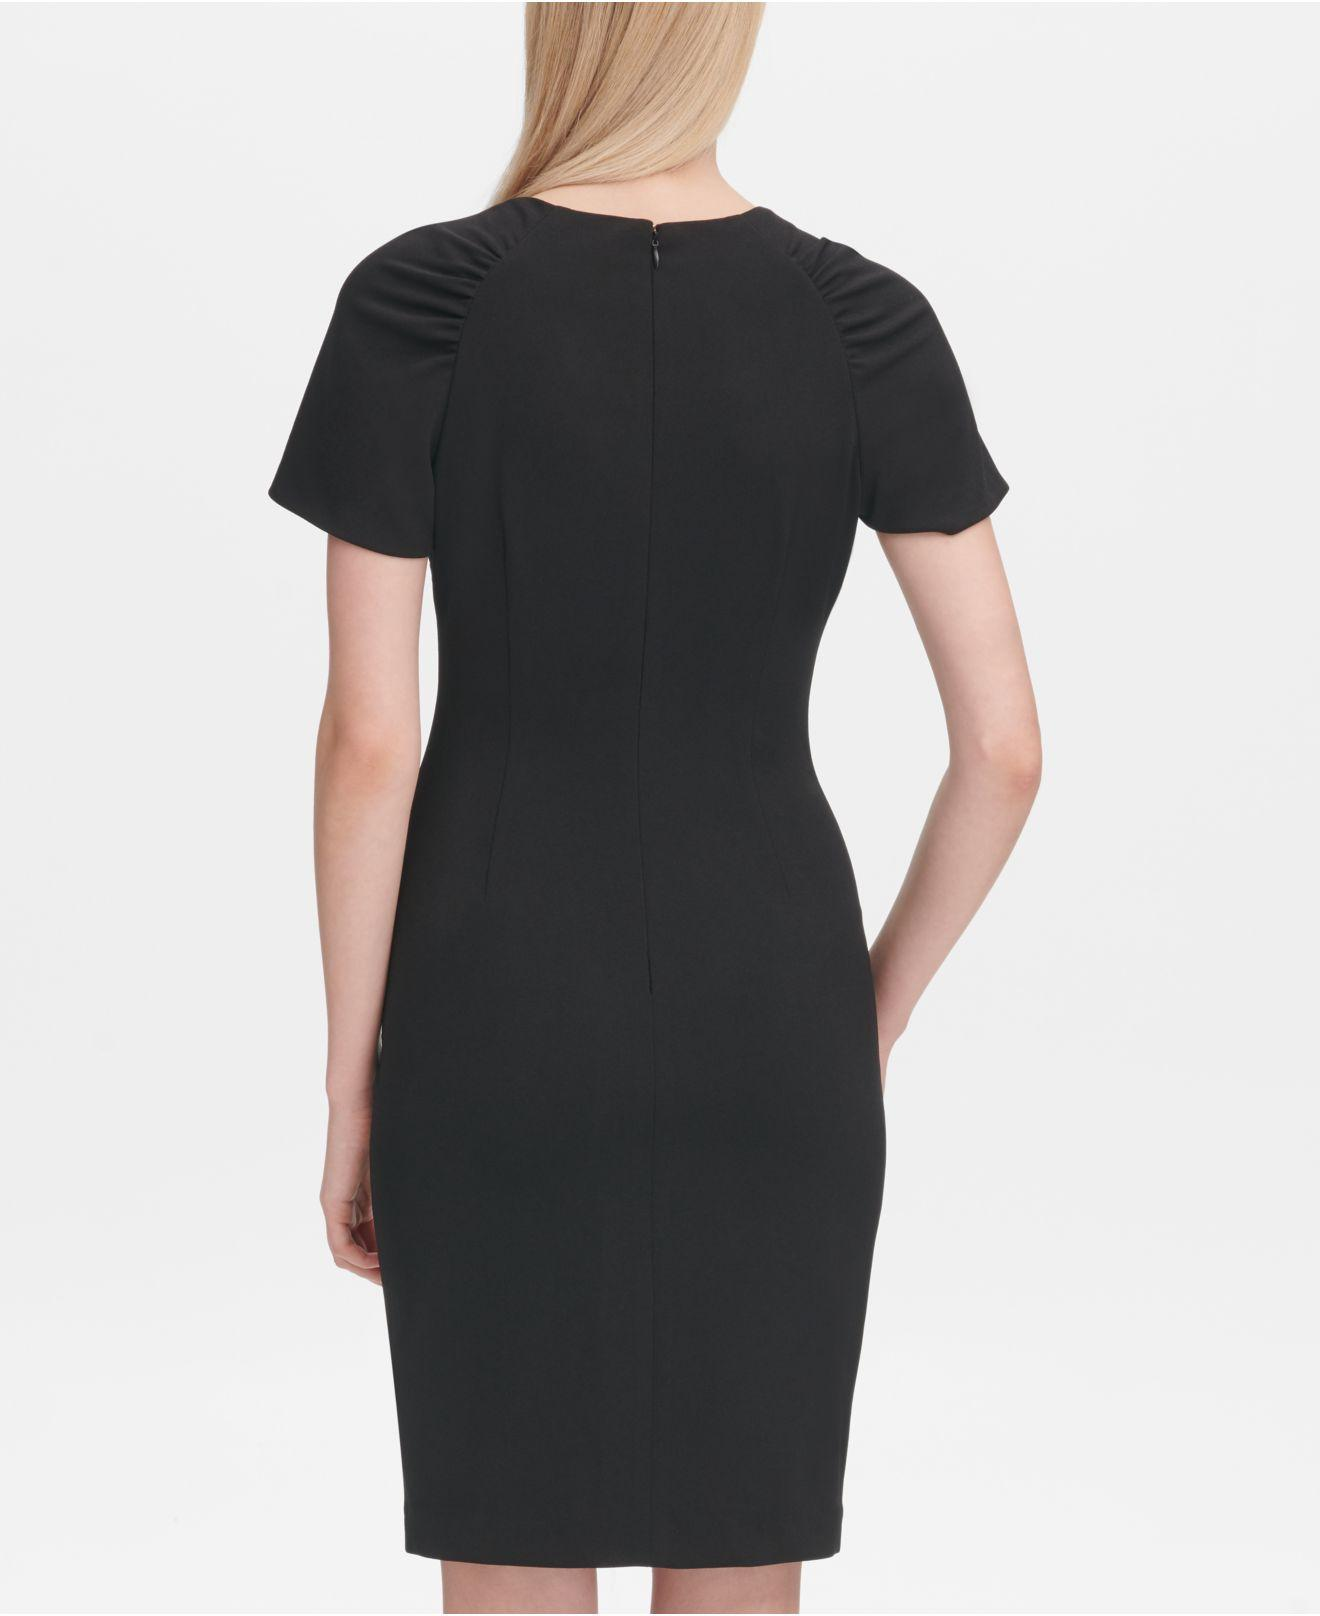 862c442e Calvin Klein Gathered-shoulder Sheath Dress in Black - Lyst